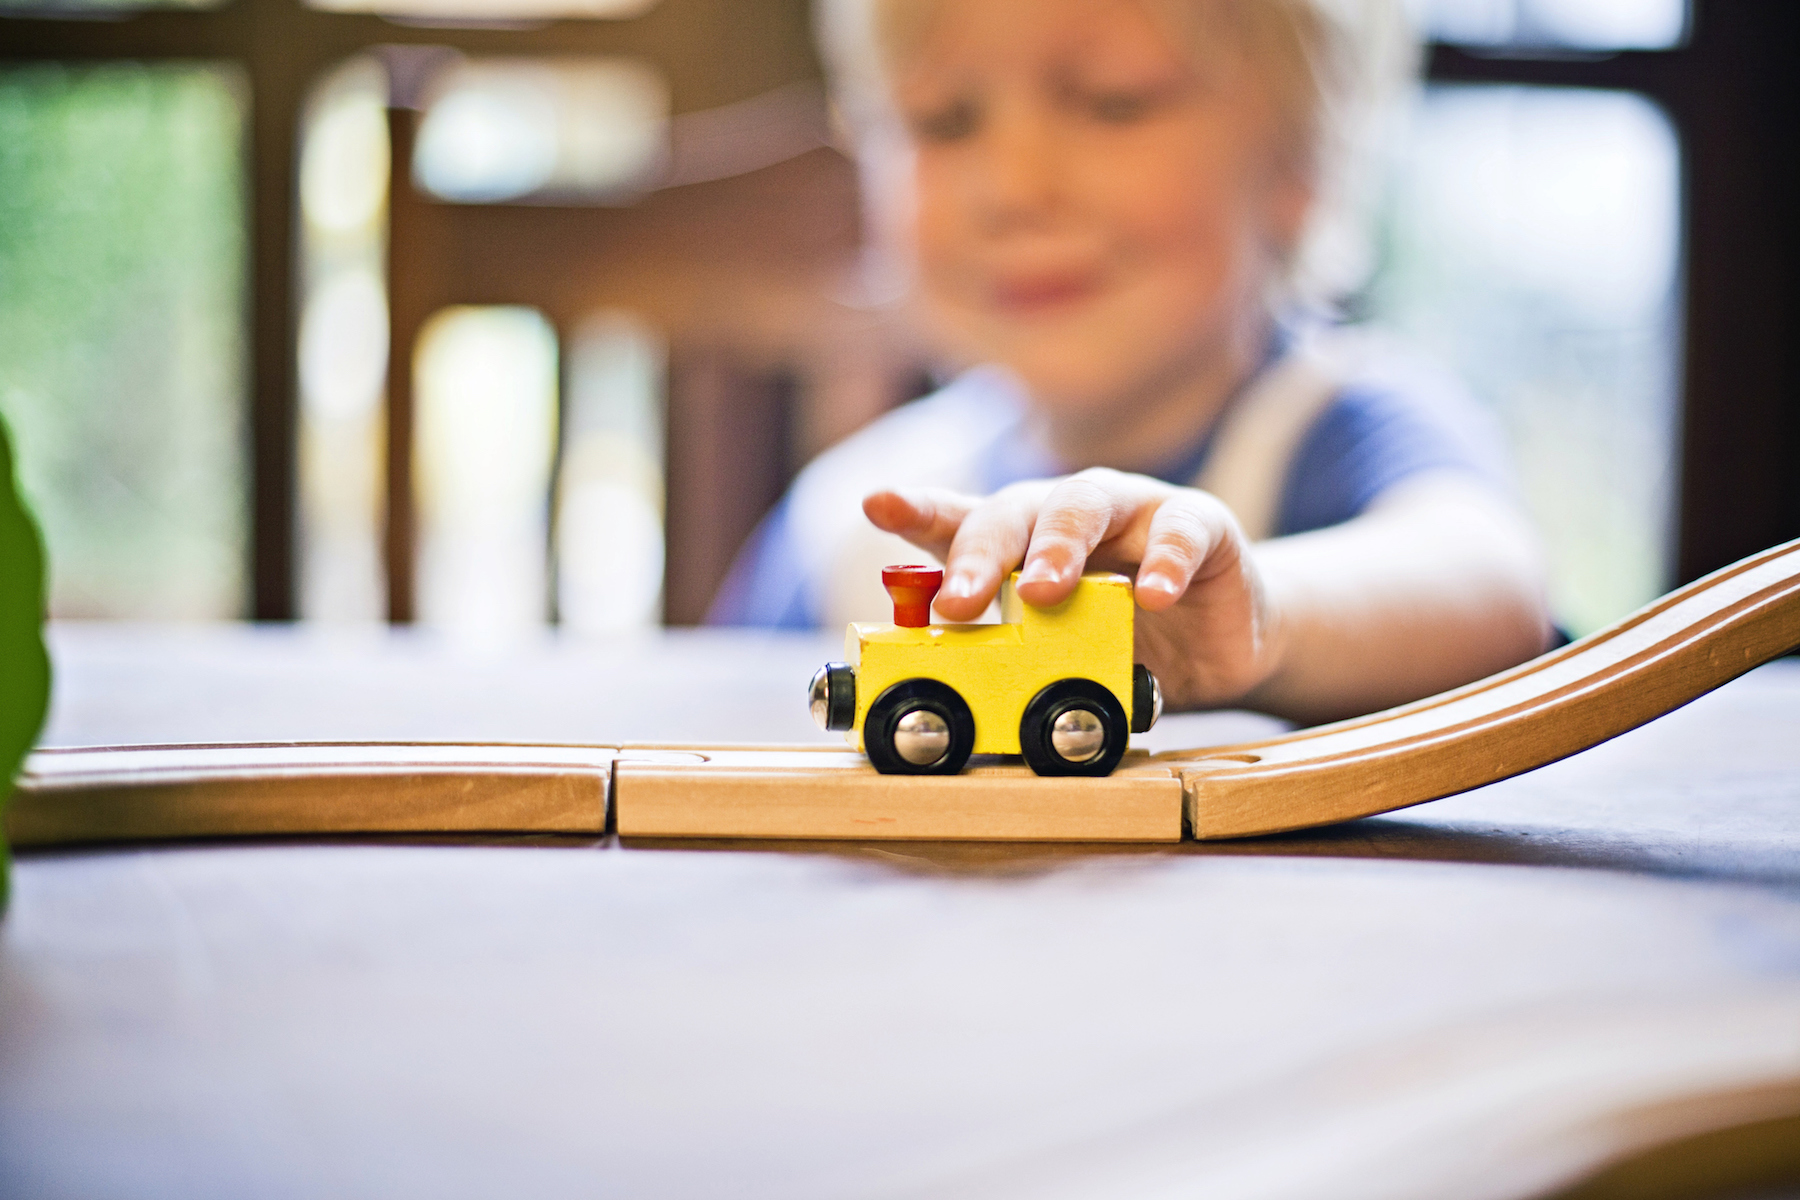 Child with yellow toy train